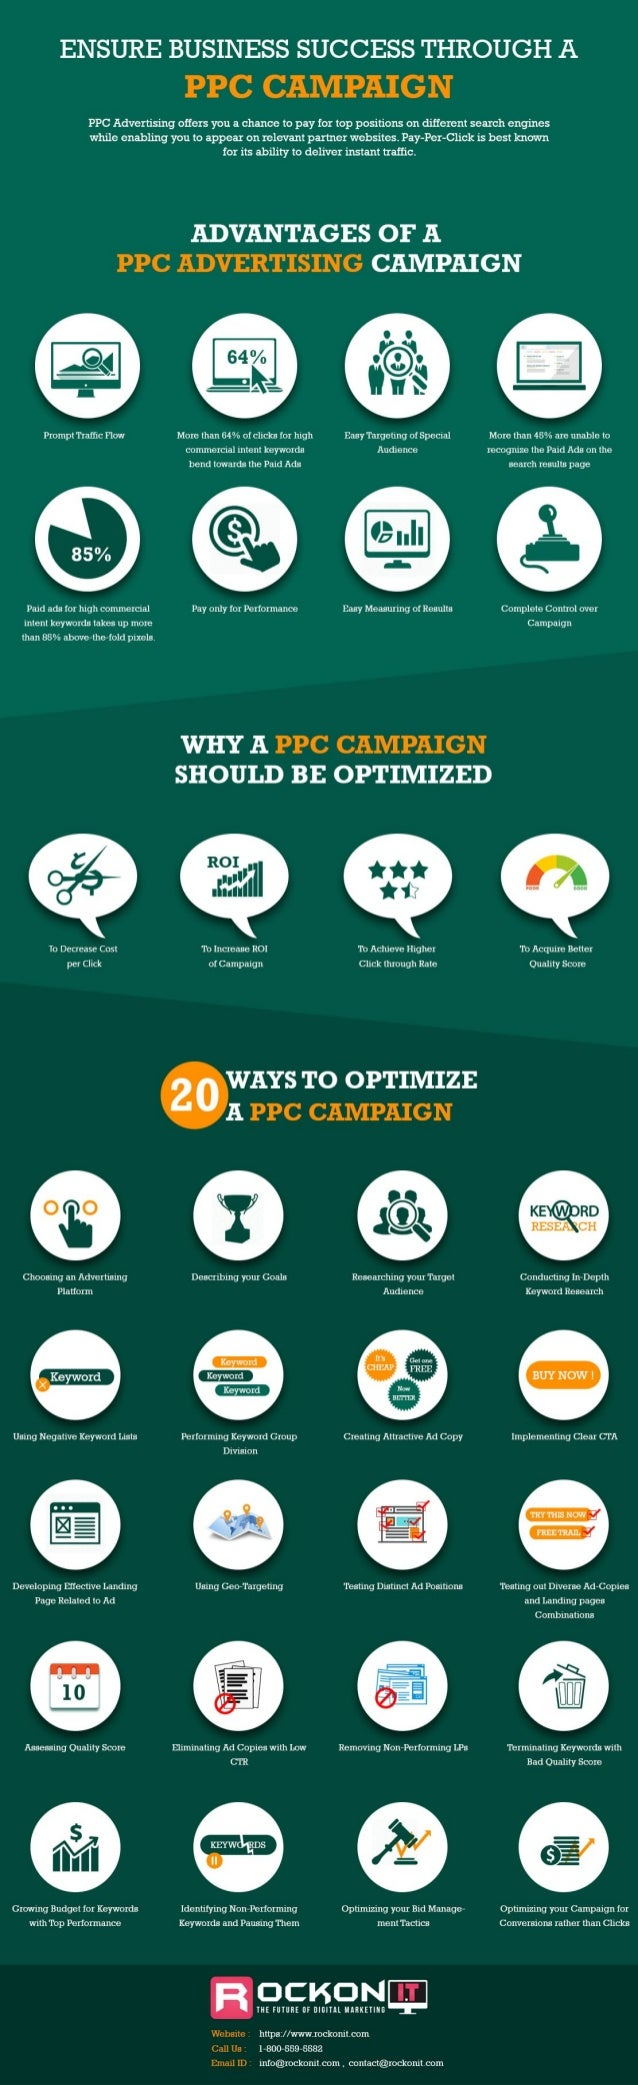 How to Ensure Business Success through a PPC Campaign - Infographic